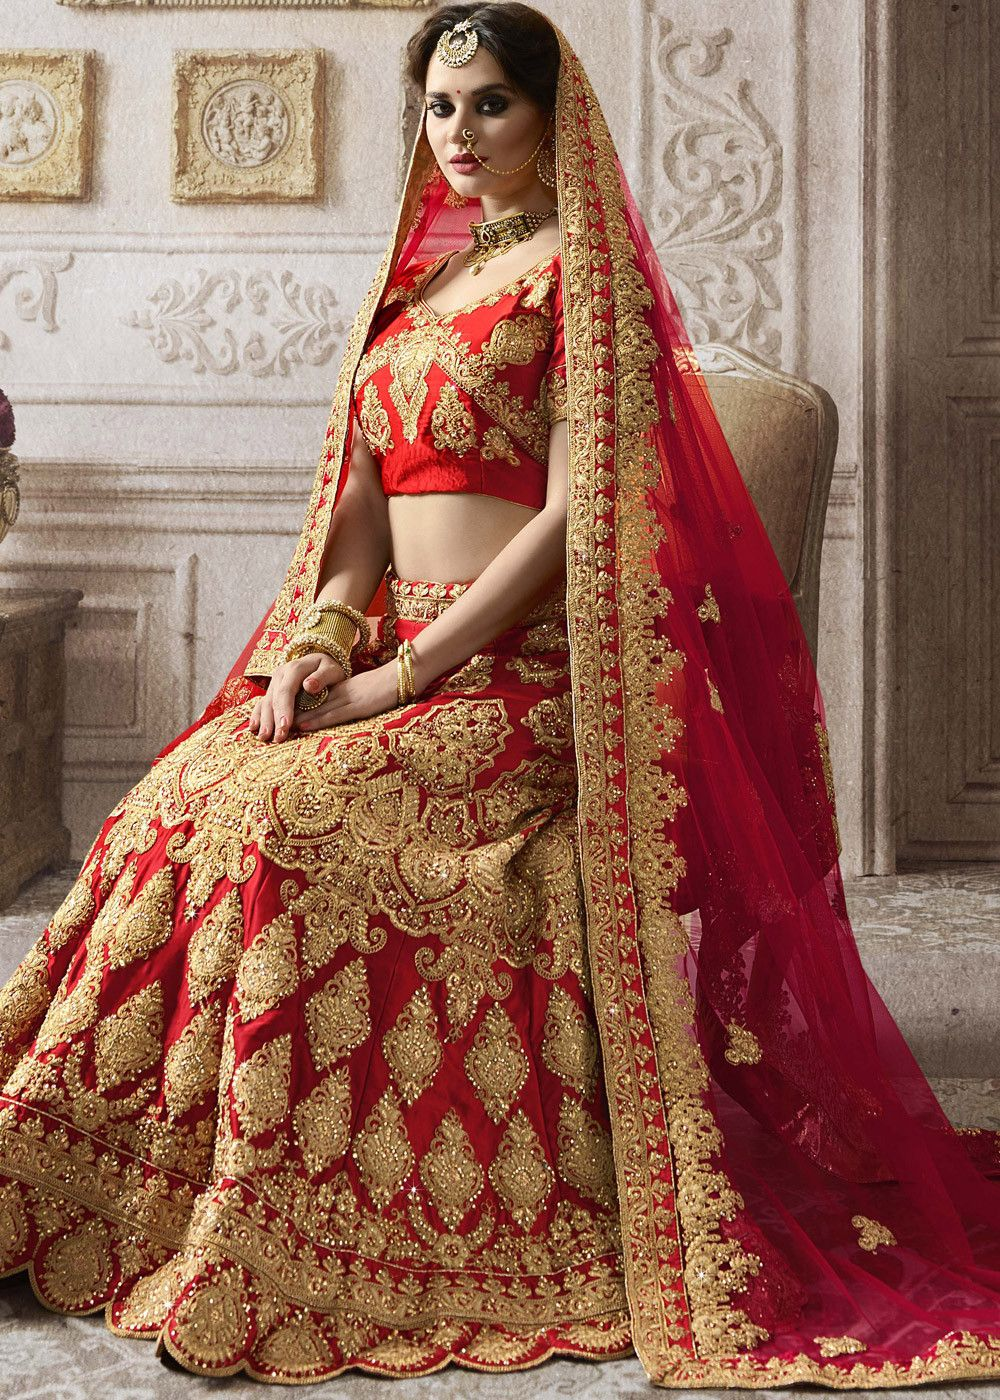 Red Satin Bridal Lehenga Choli With All Over Heavy Zari Embroidery And Kundan Work Indian Bridal Dress Indian Bridal Wear Indian Bridal Lehenga